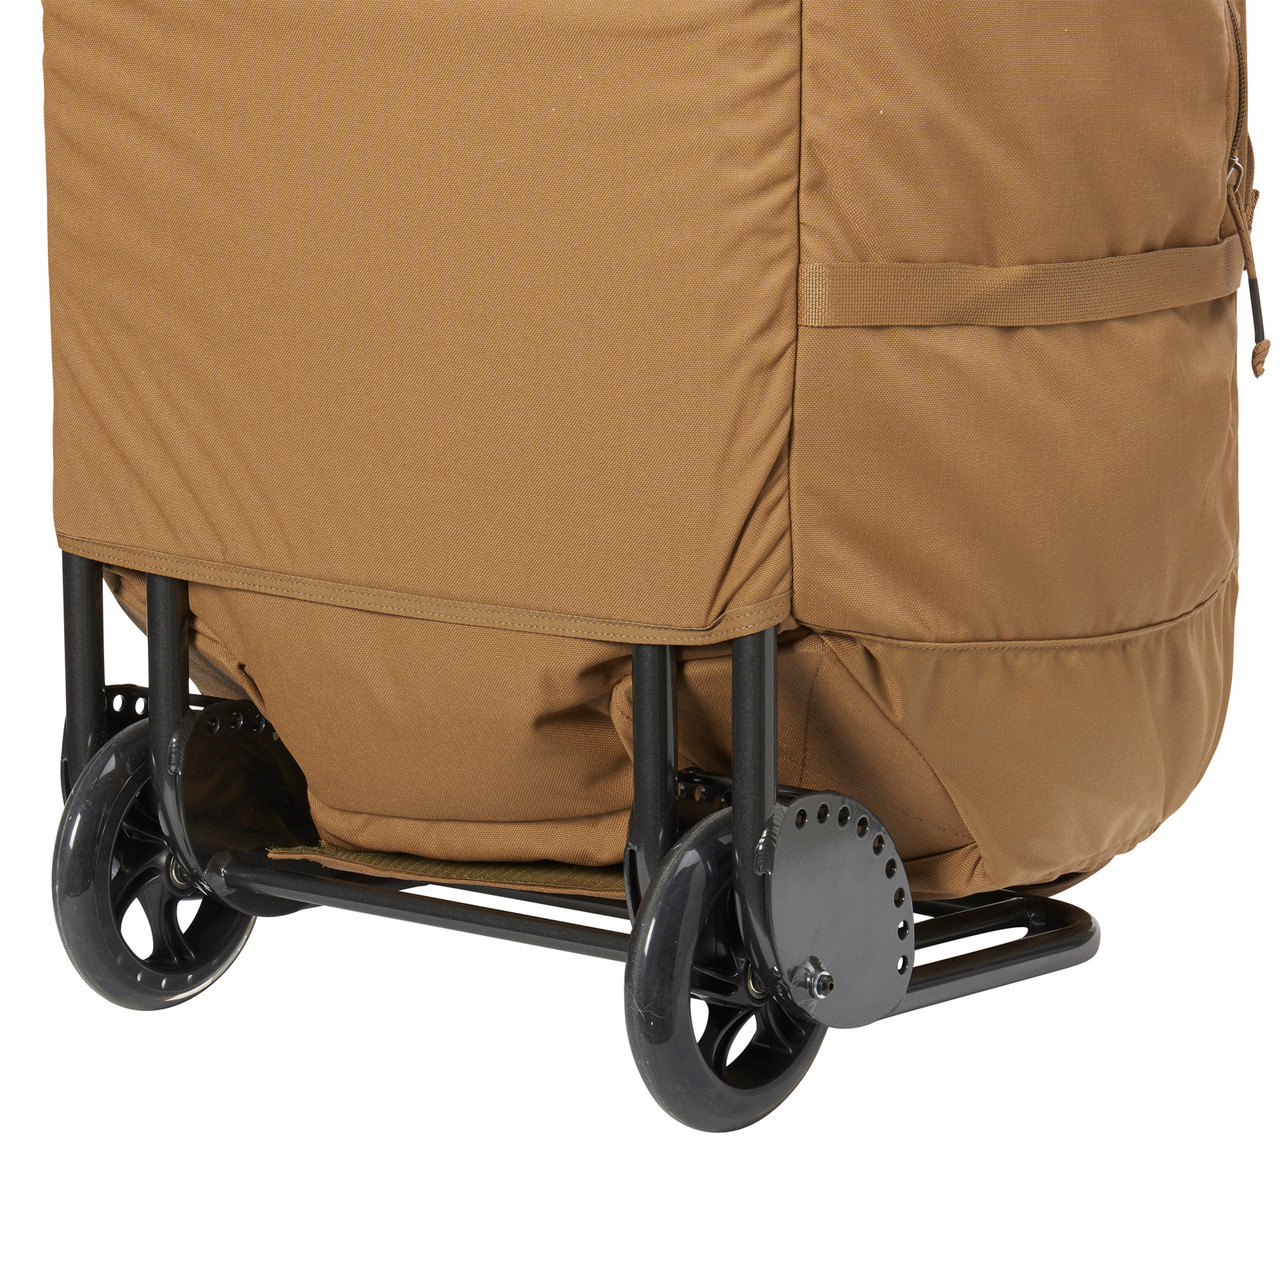 Kelty BRT USA rolling trunk,  coyote brown colorway, closeup of wheels